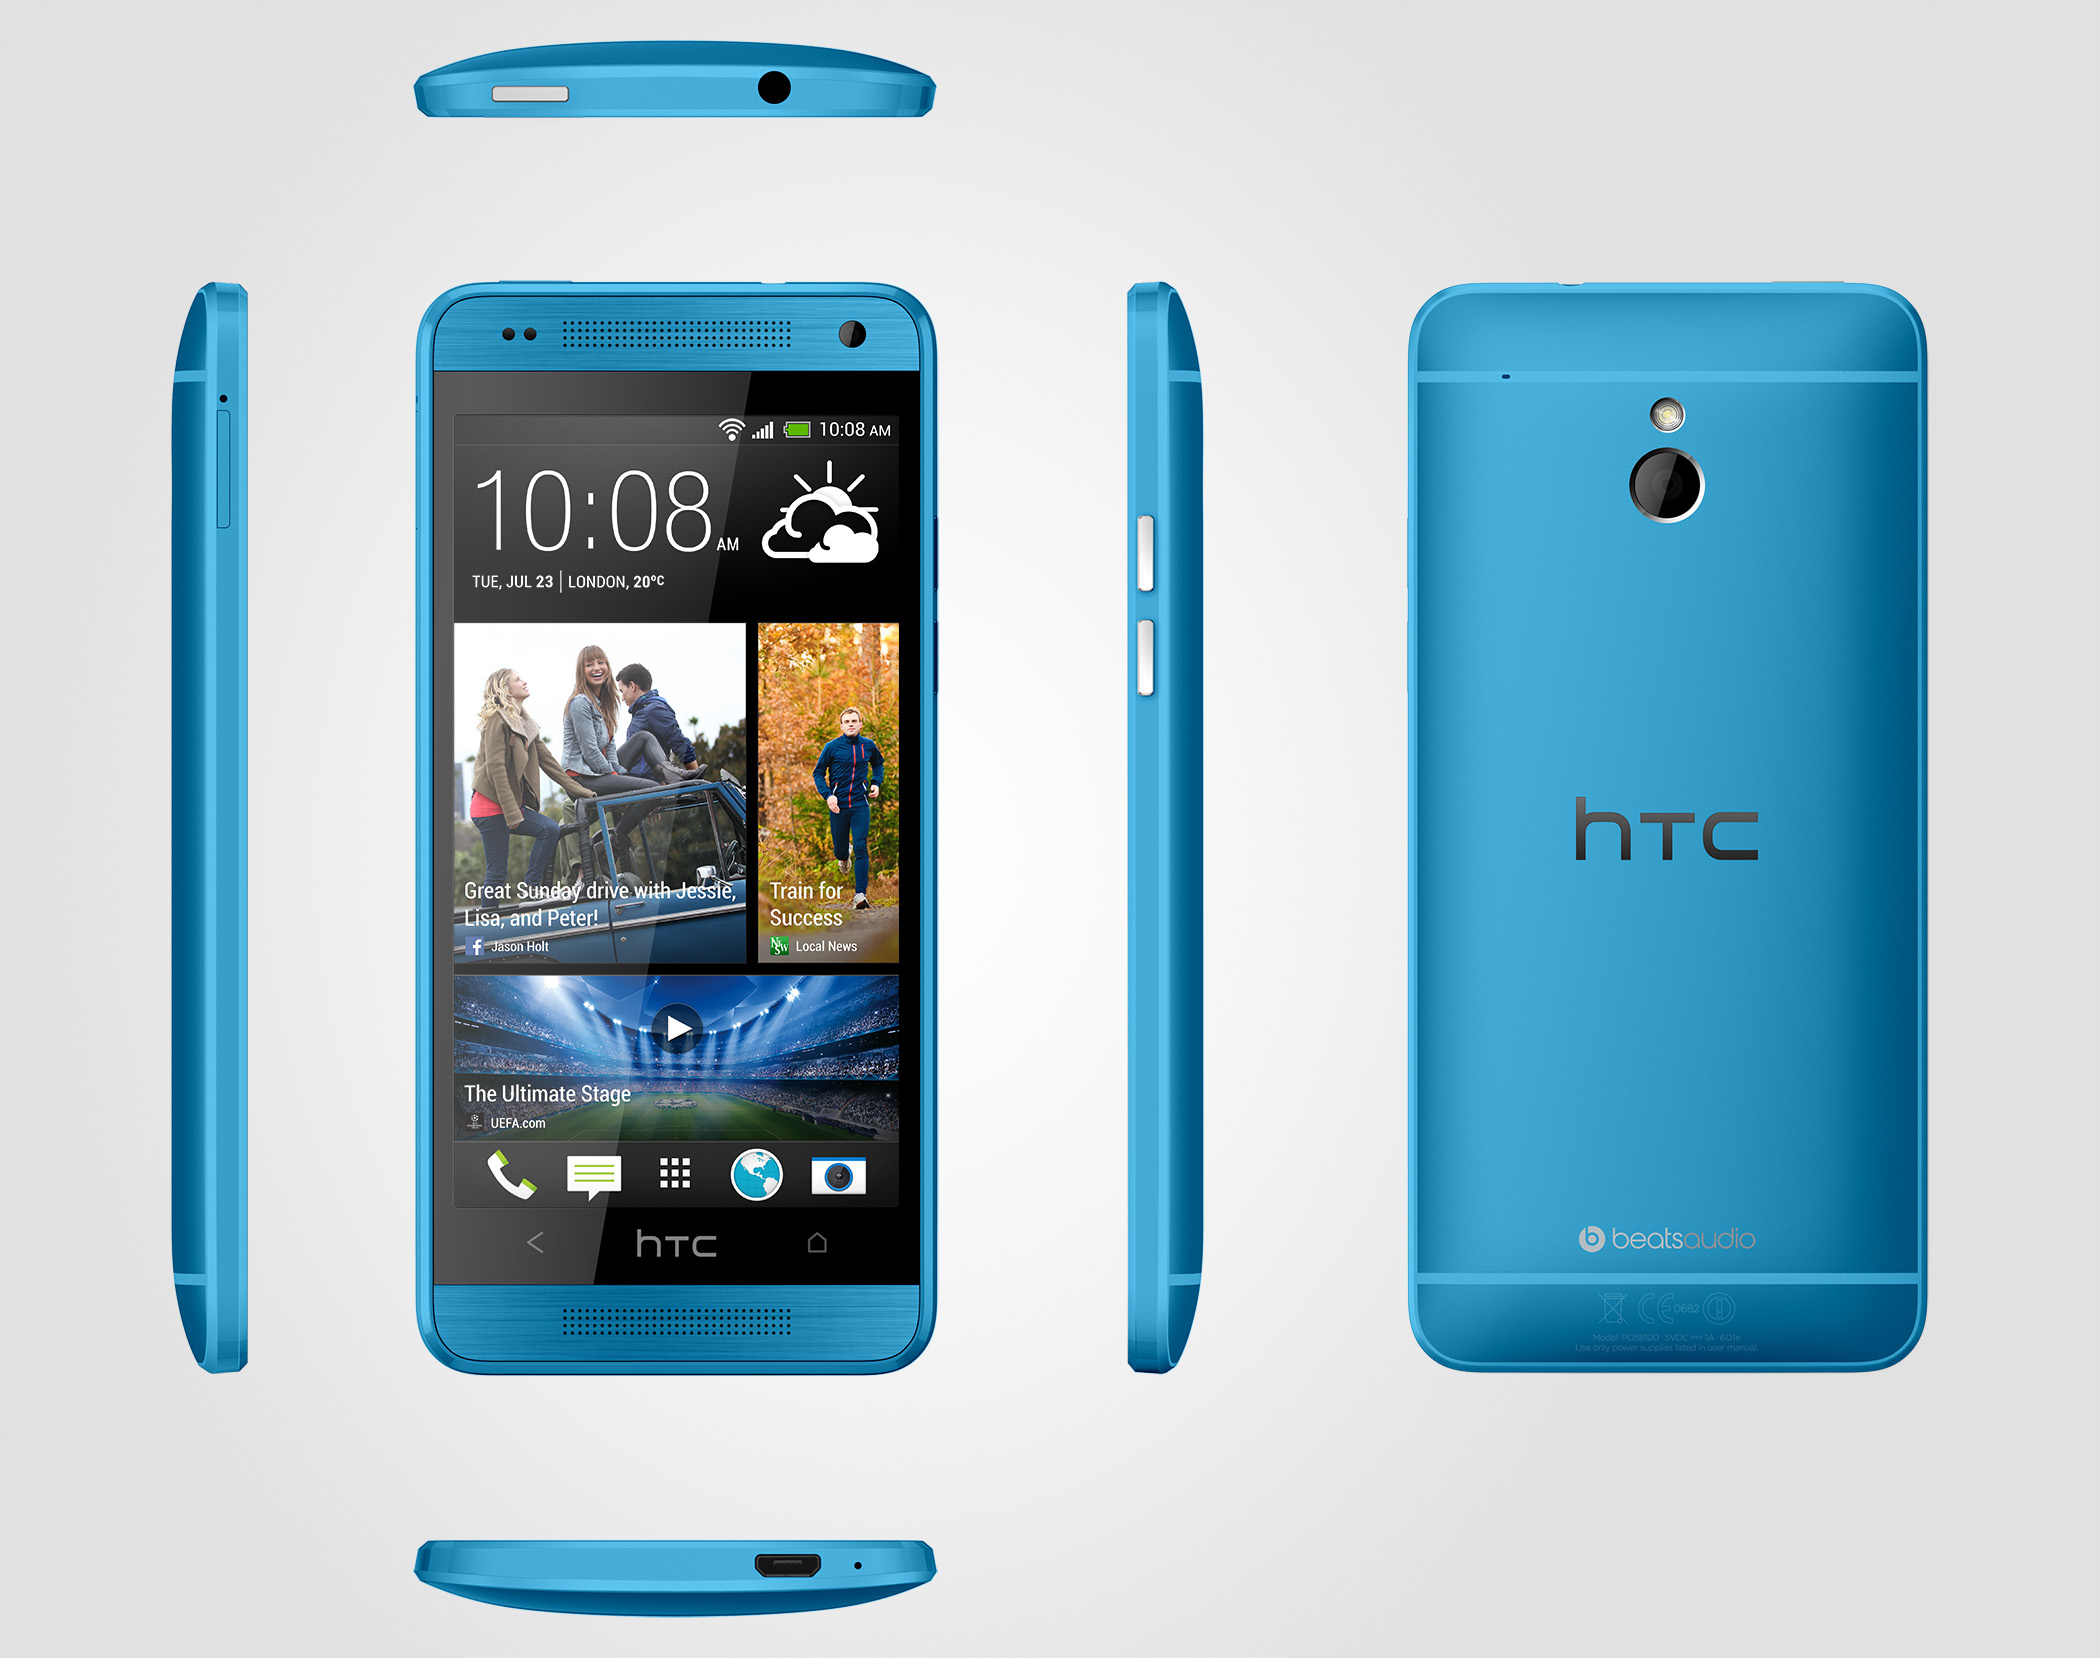 HTC-One-mini-2-price